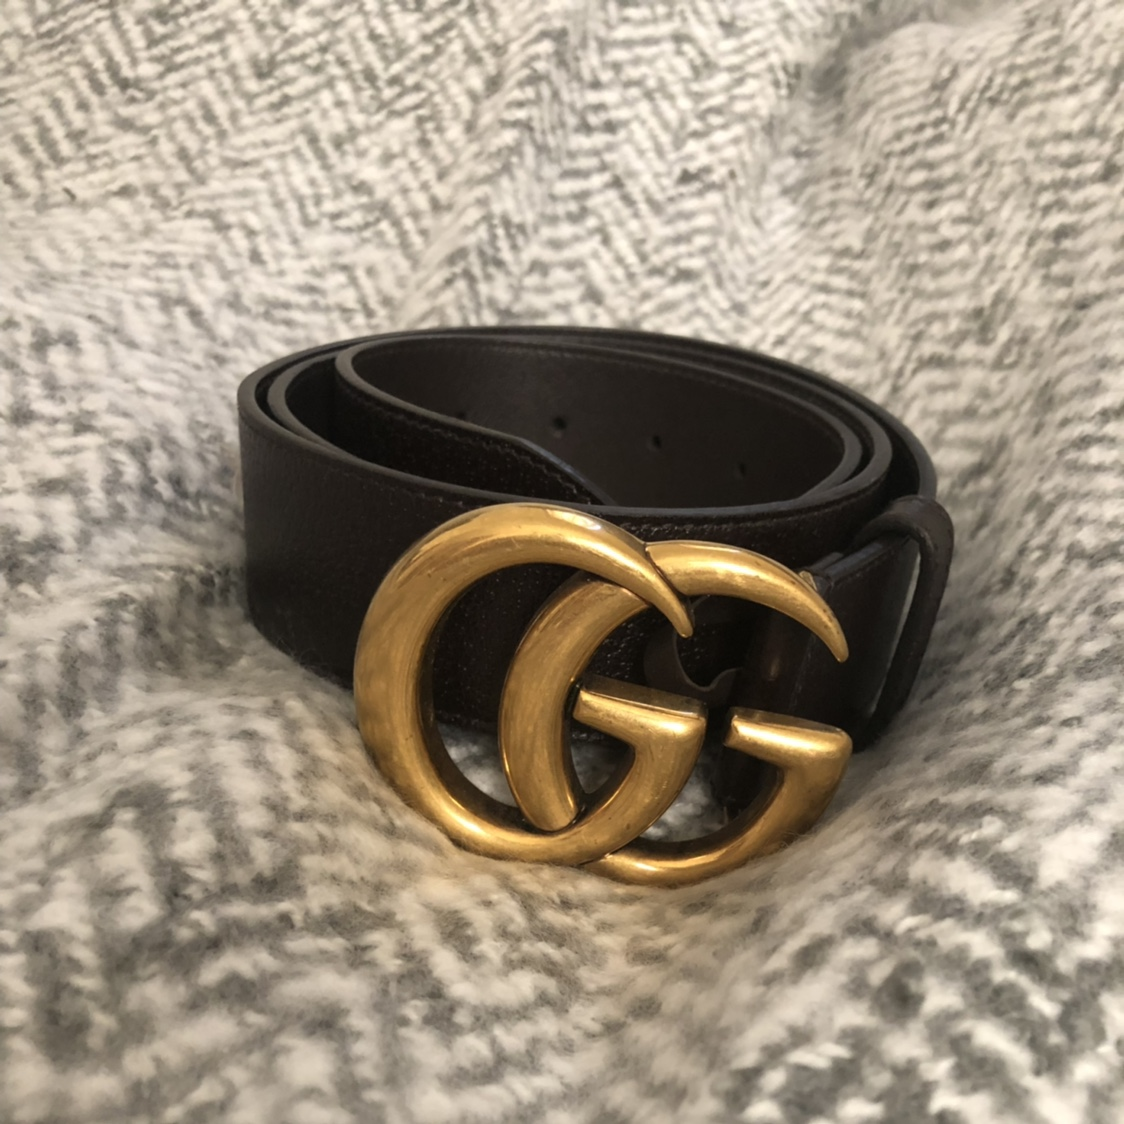 965170151 Double G buckle Gucci Belt with gold hardware in... - Depop